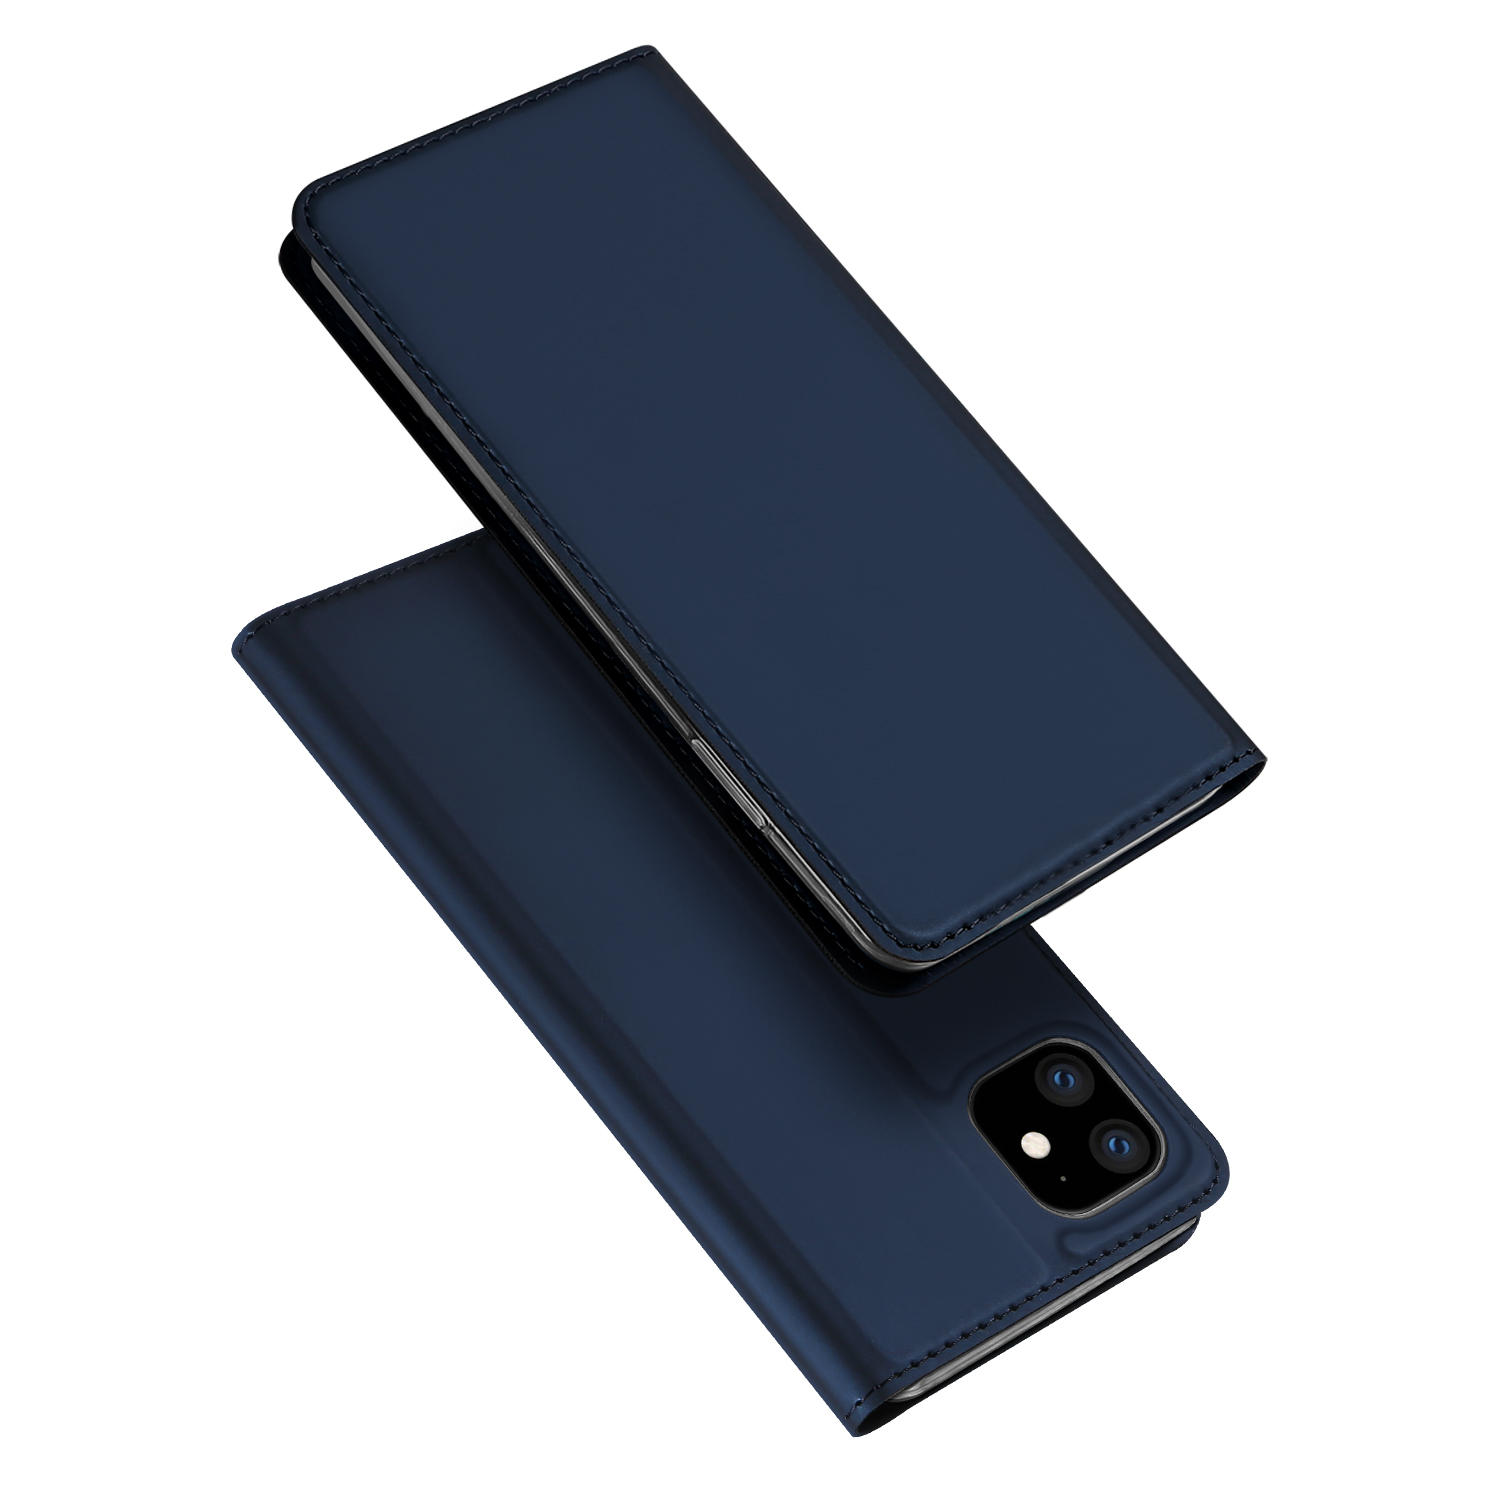 DUX DUCIS Flip Magnetic Shockproof with Card Slot PU Leather Protective Case for iPhone 11 Pro Max 6.5 inch